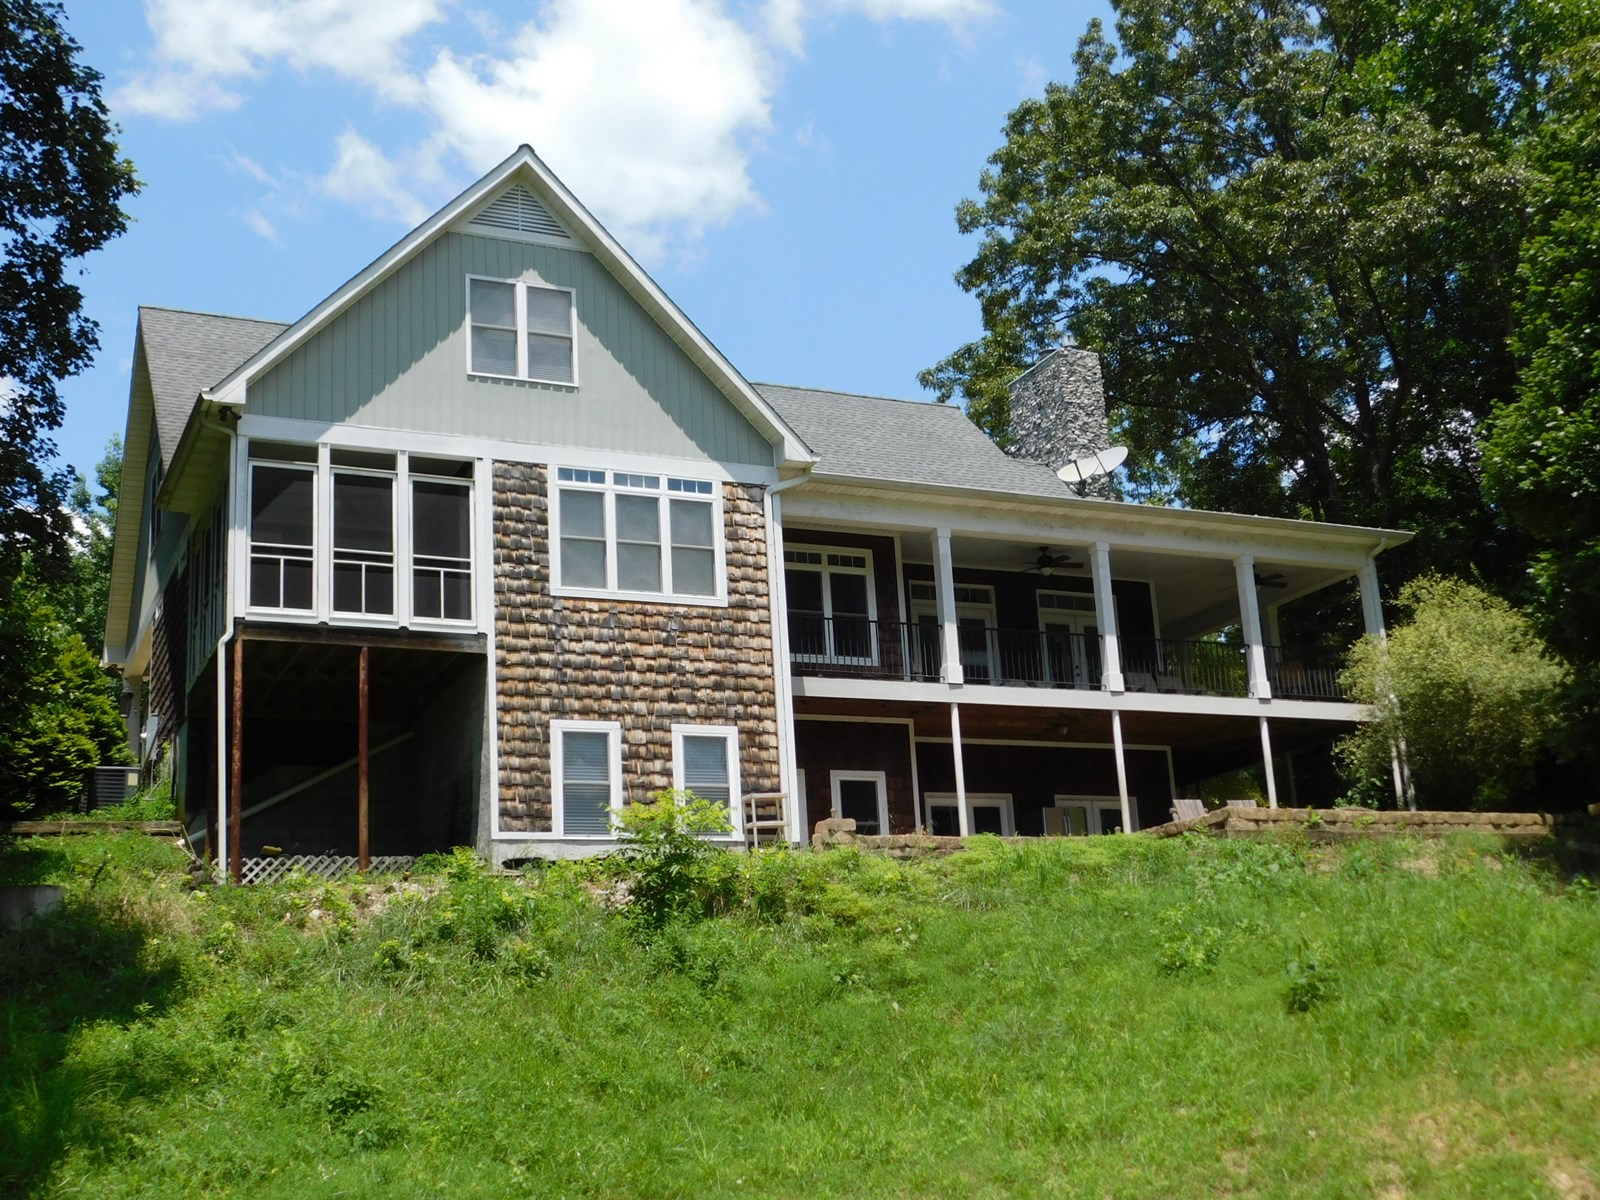 FARM FOR SALE IN TN WITH 5 BR HOME, FENCING, PASTURE, CREEK